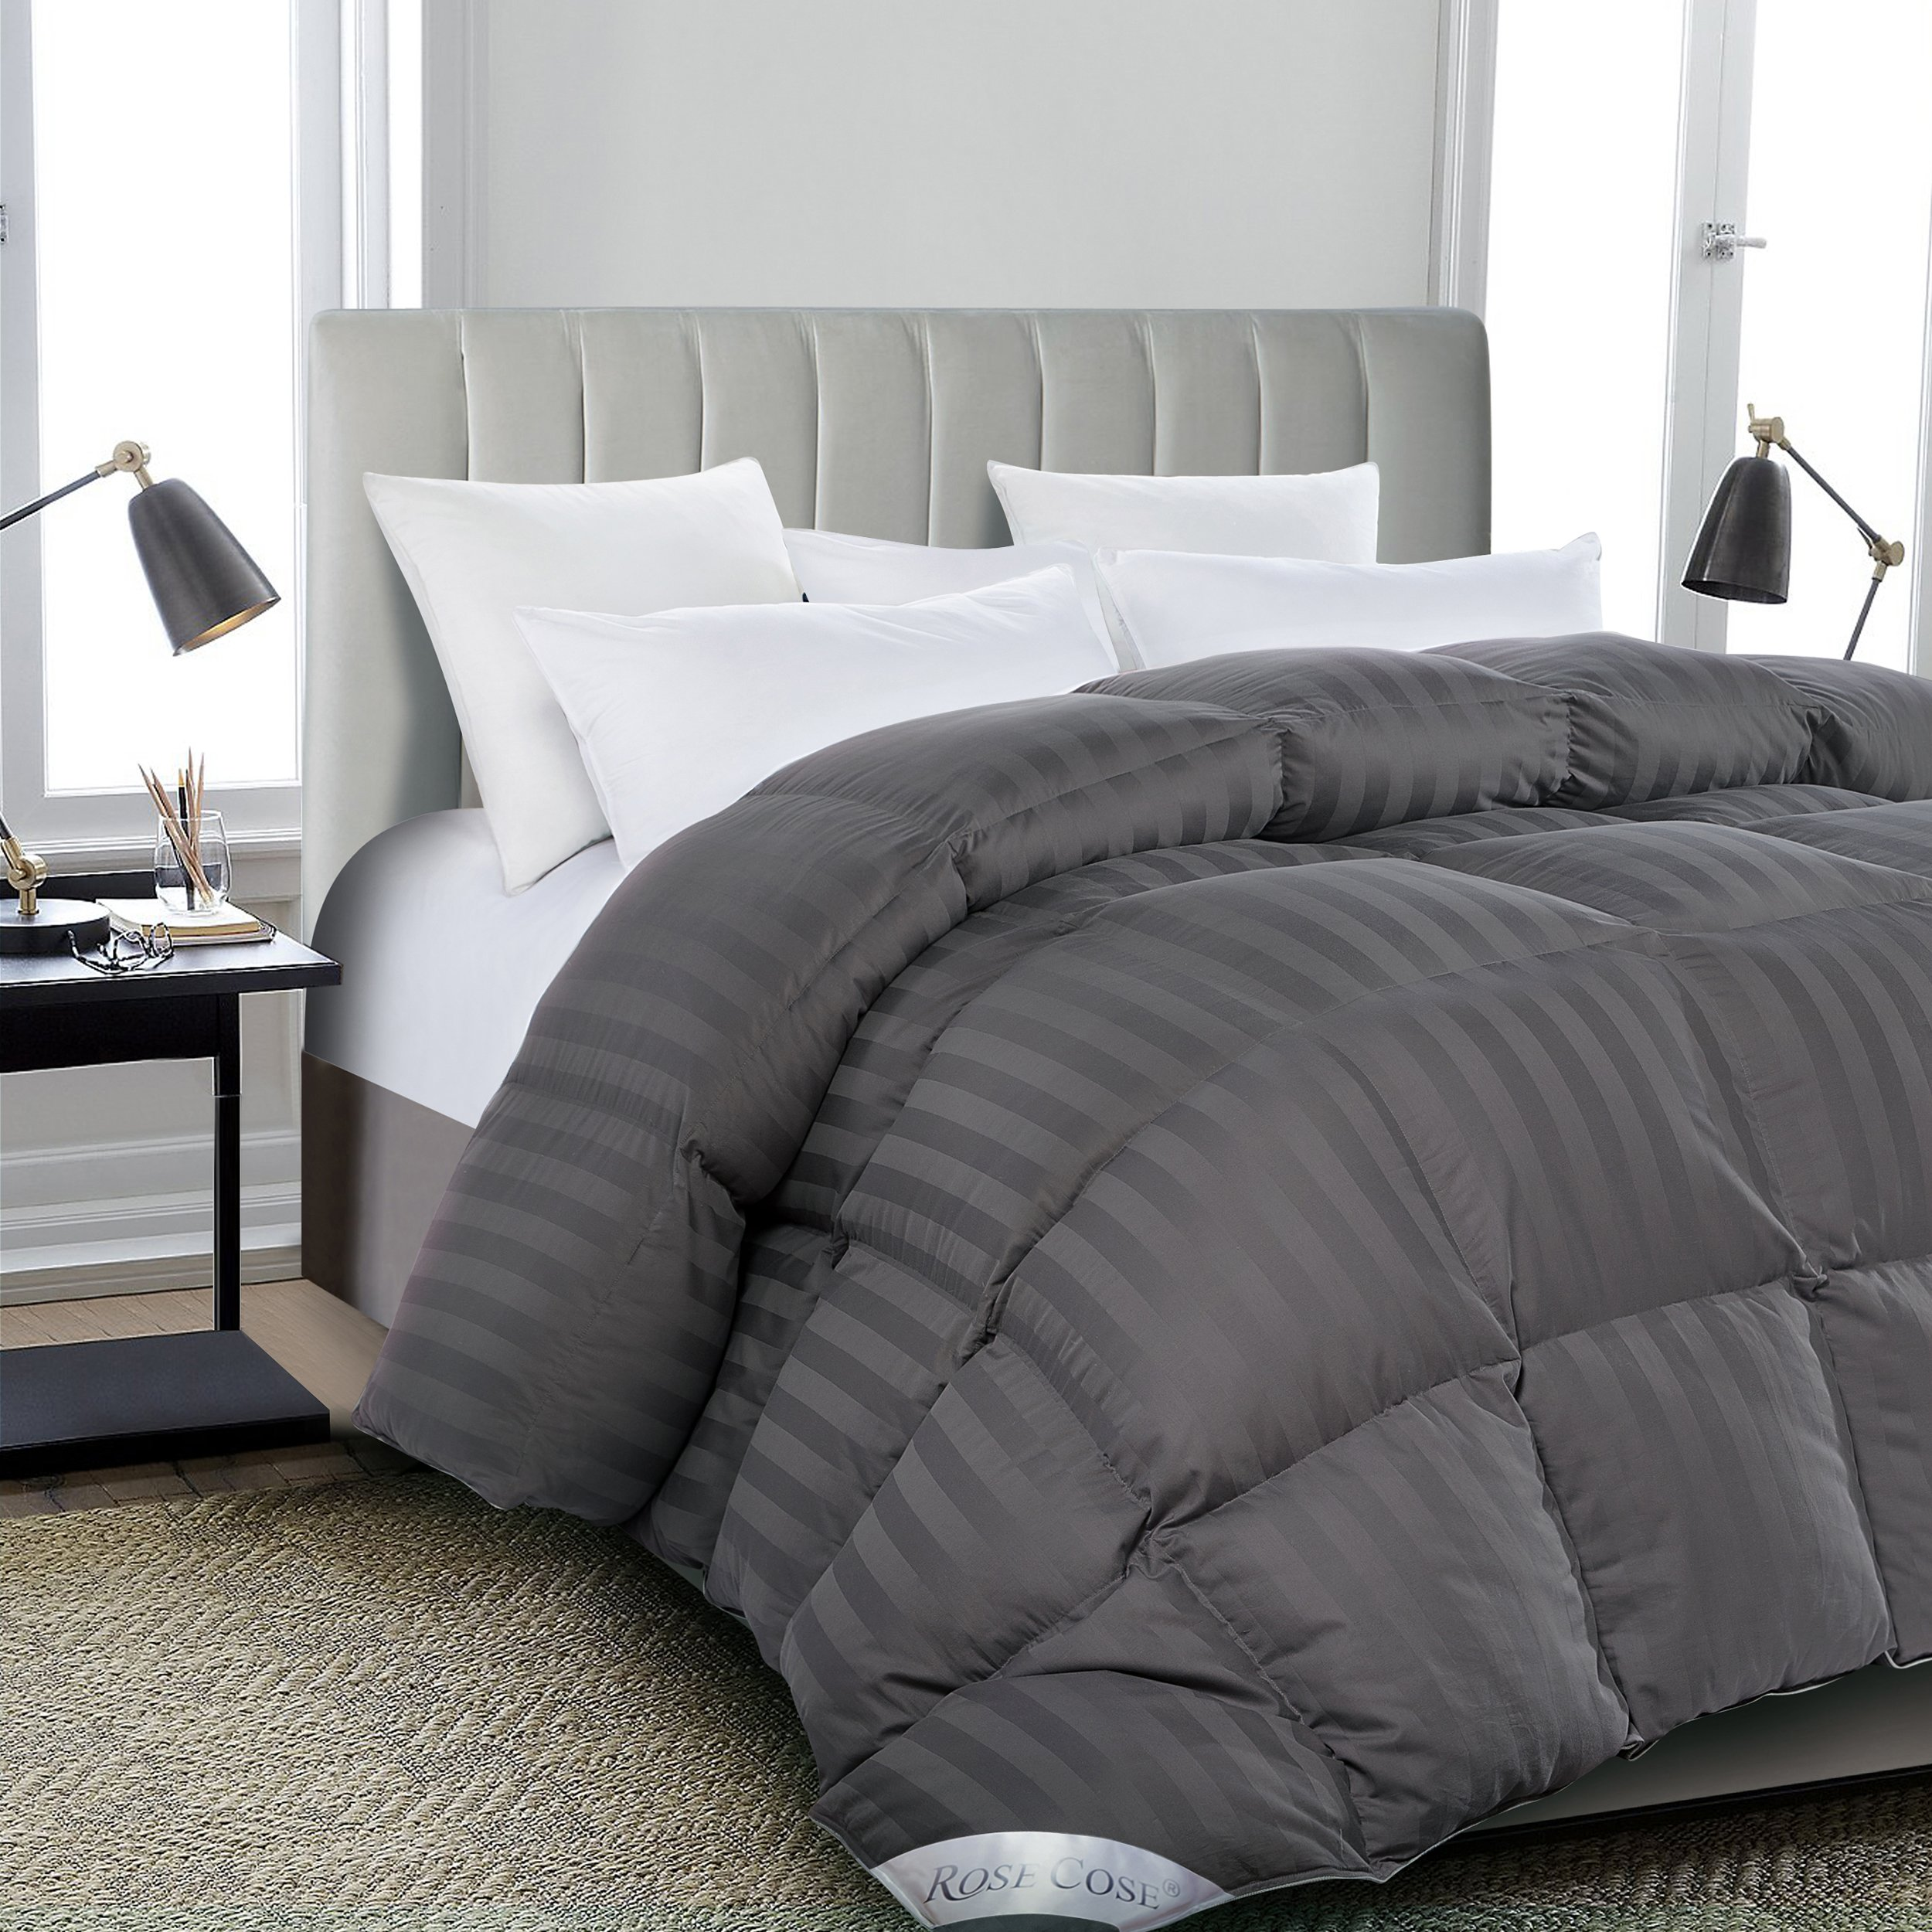 ROSECOSE Luxurious All Seasons Goose Down Comforter Queen Size Duvet Insert Gray Stripe 1200 Thread Count 750+ Fill Power 100% Cotton Shell Hypo-allergenic Down Proof With Tabs (Queen,Gray Stripe)